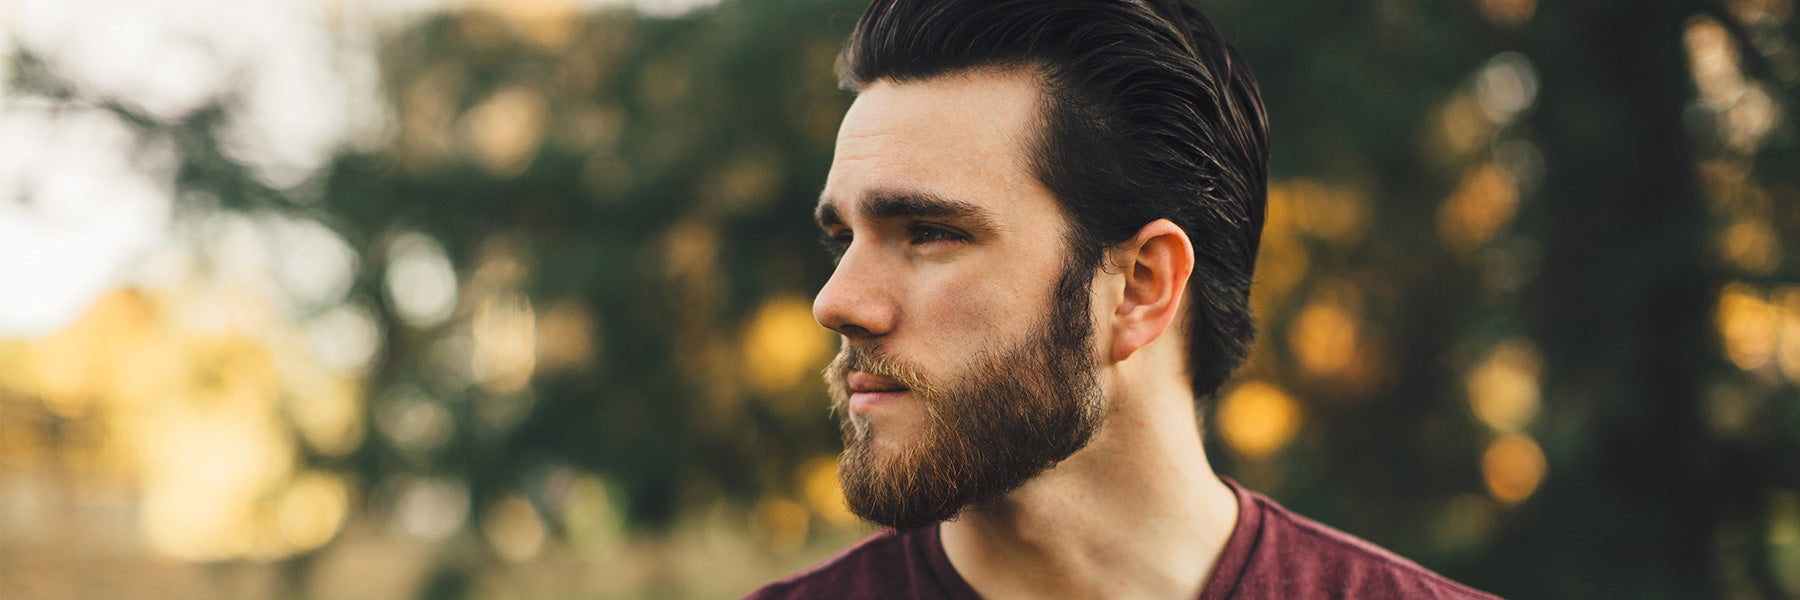 The Top 6 Beard Growing Mistakes (and how to avoid them)